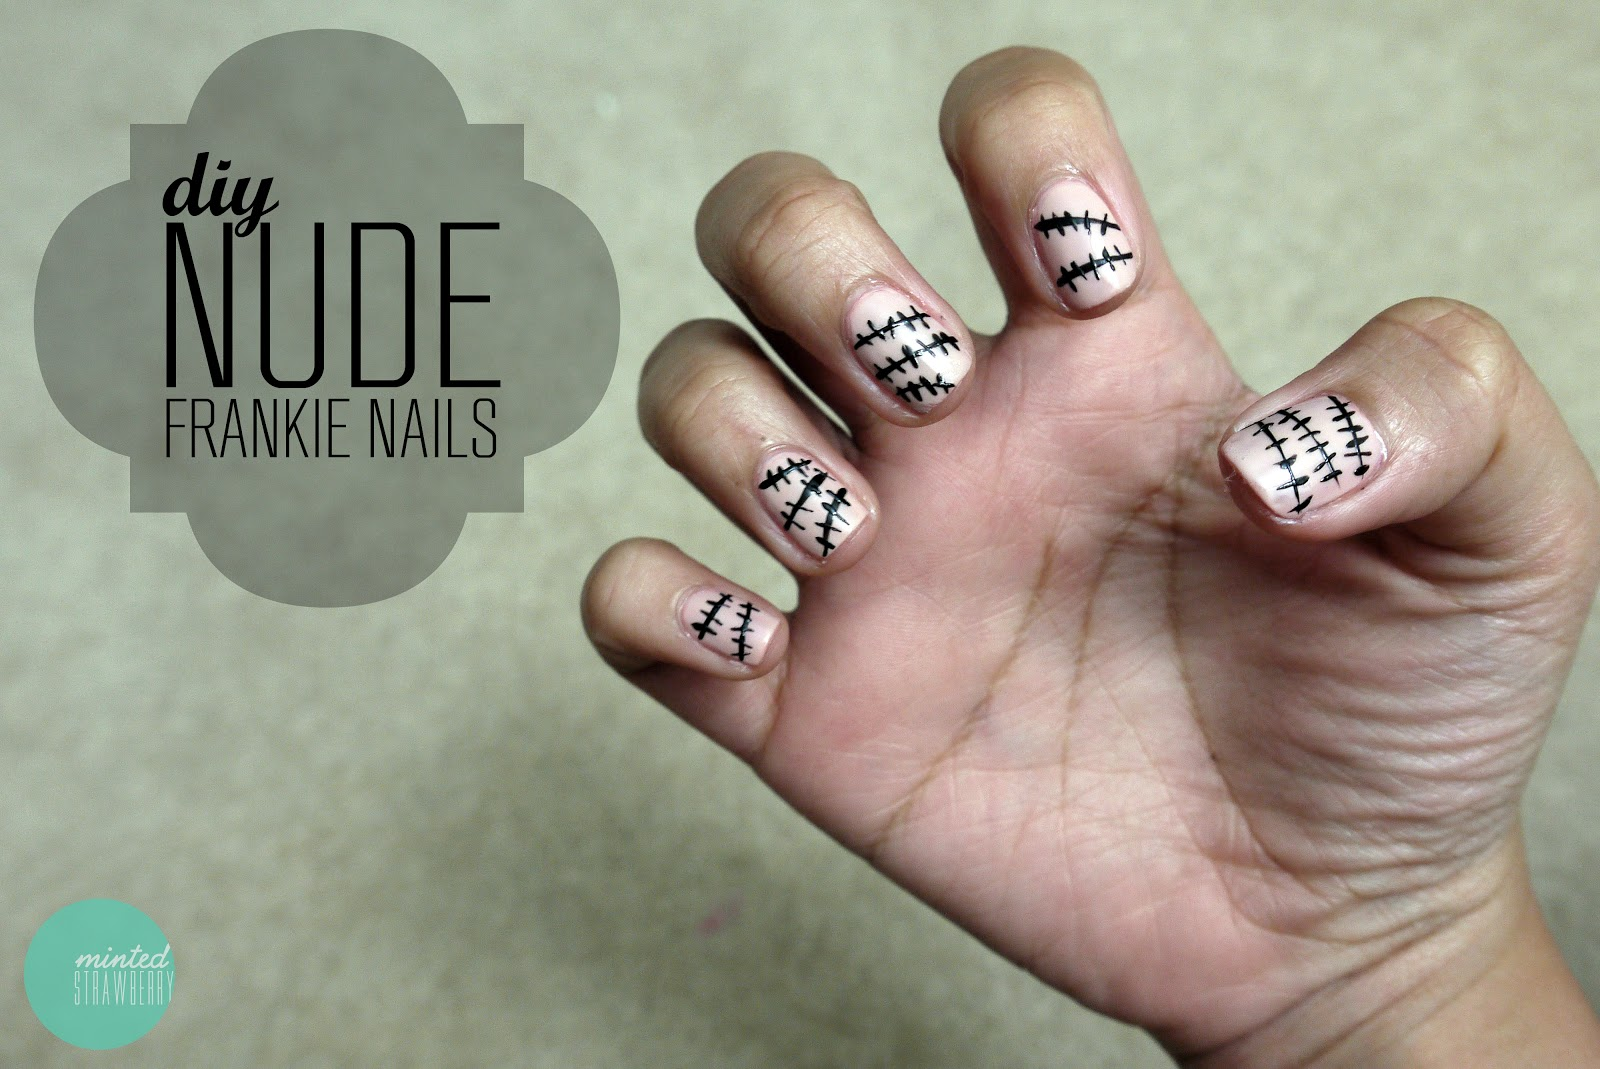 Nail Polish Nude Frankenstein Nails Minted Strawberry